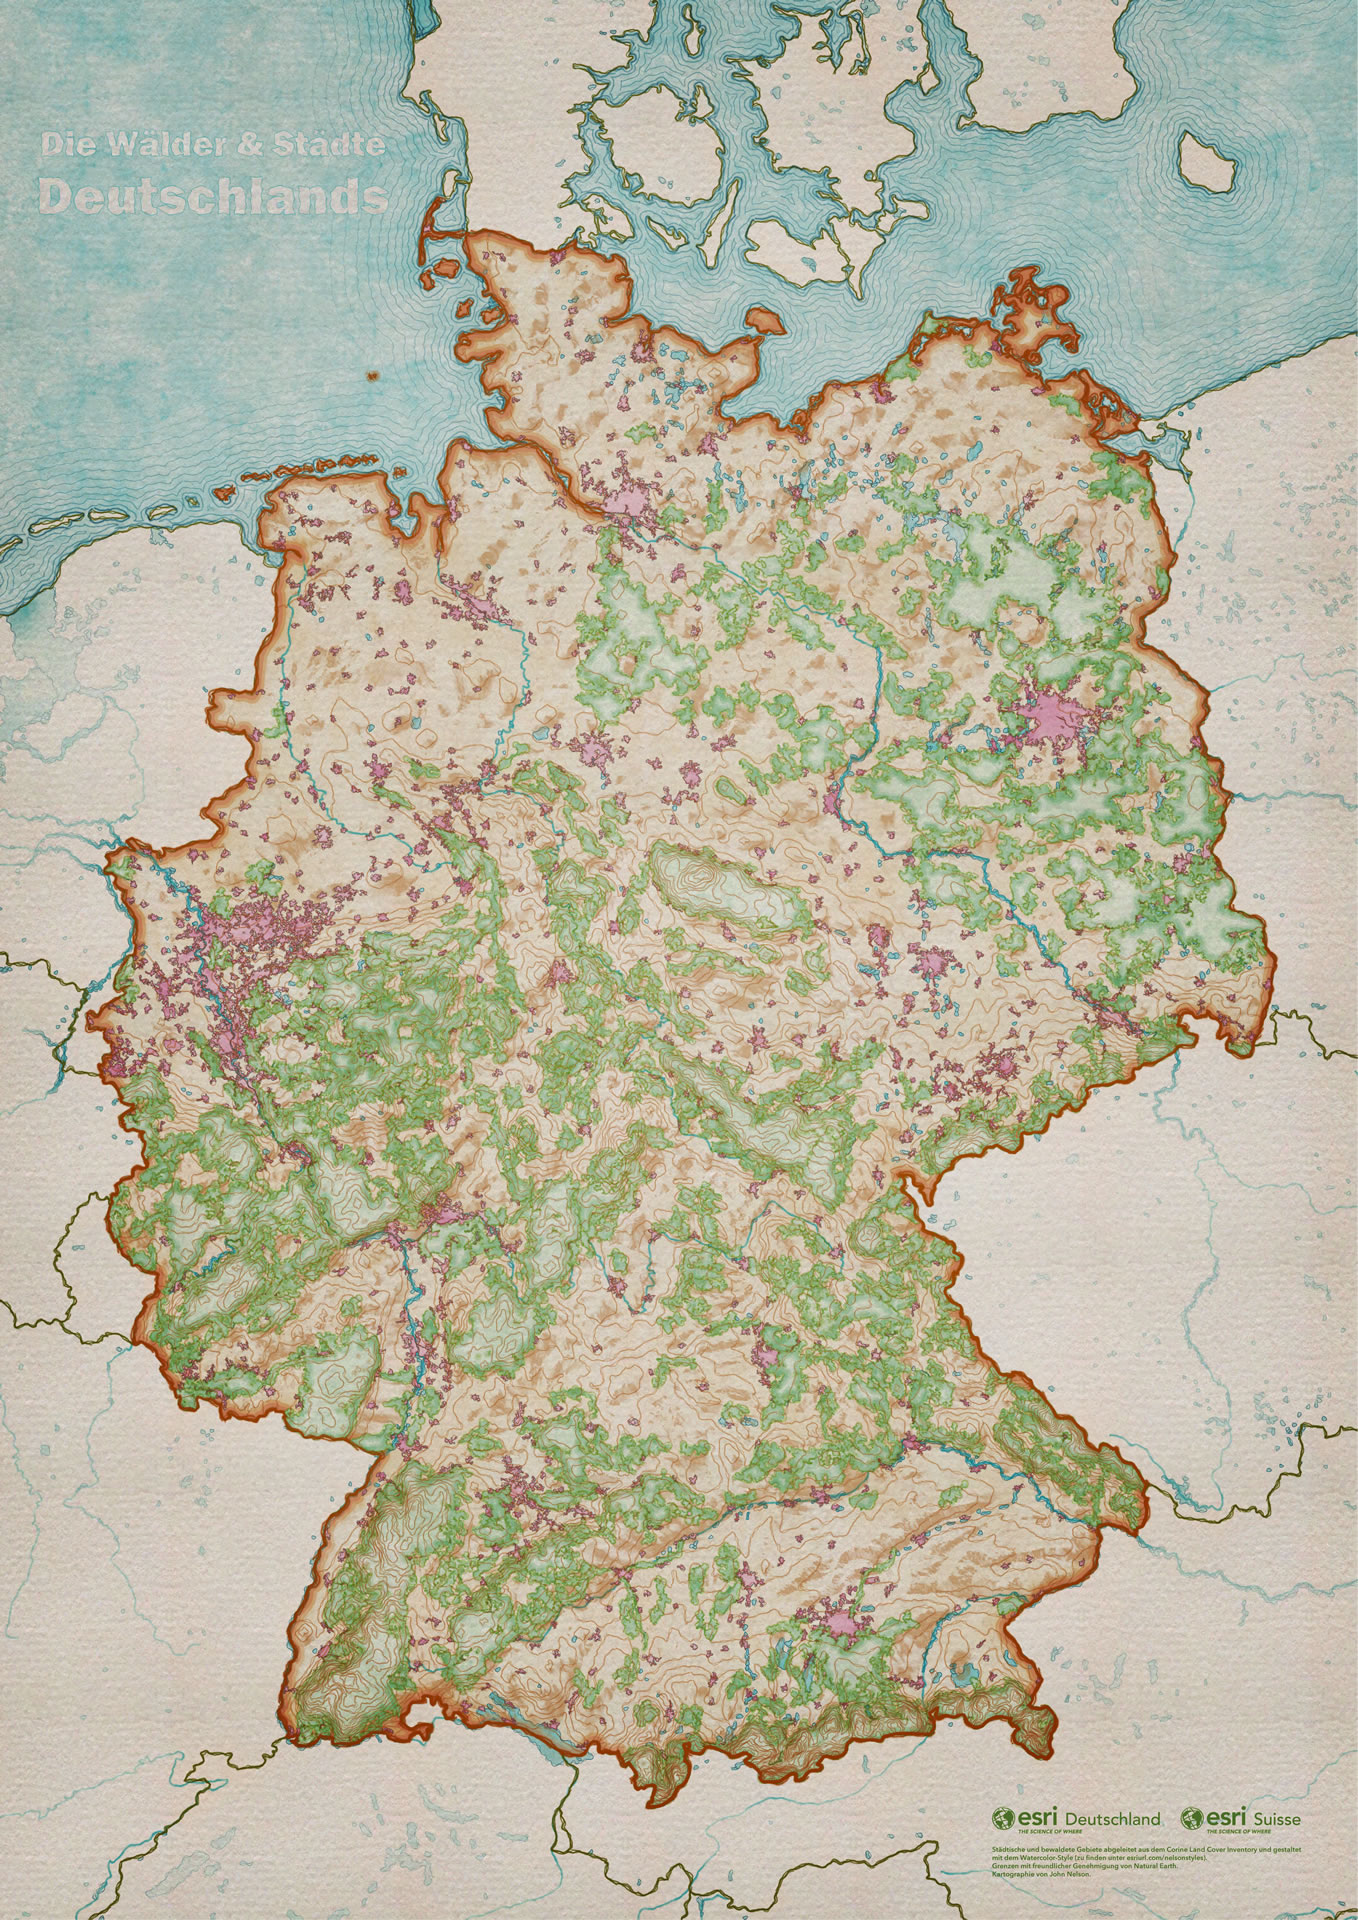 Maps Of Germany And Switzerland : germany, switzerland, Germany, Switzerland, Adventures, Mapping